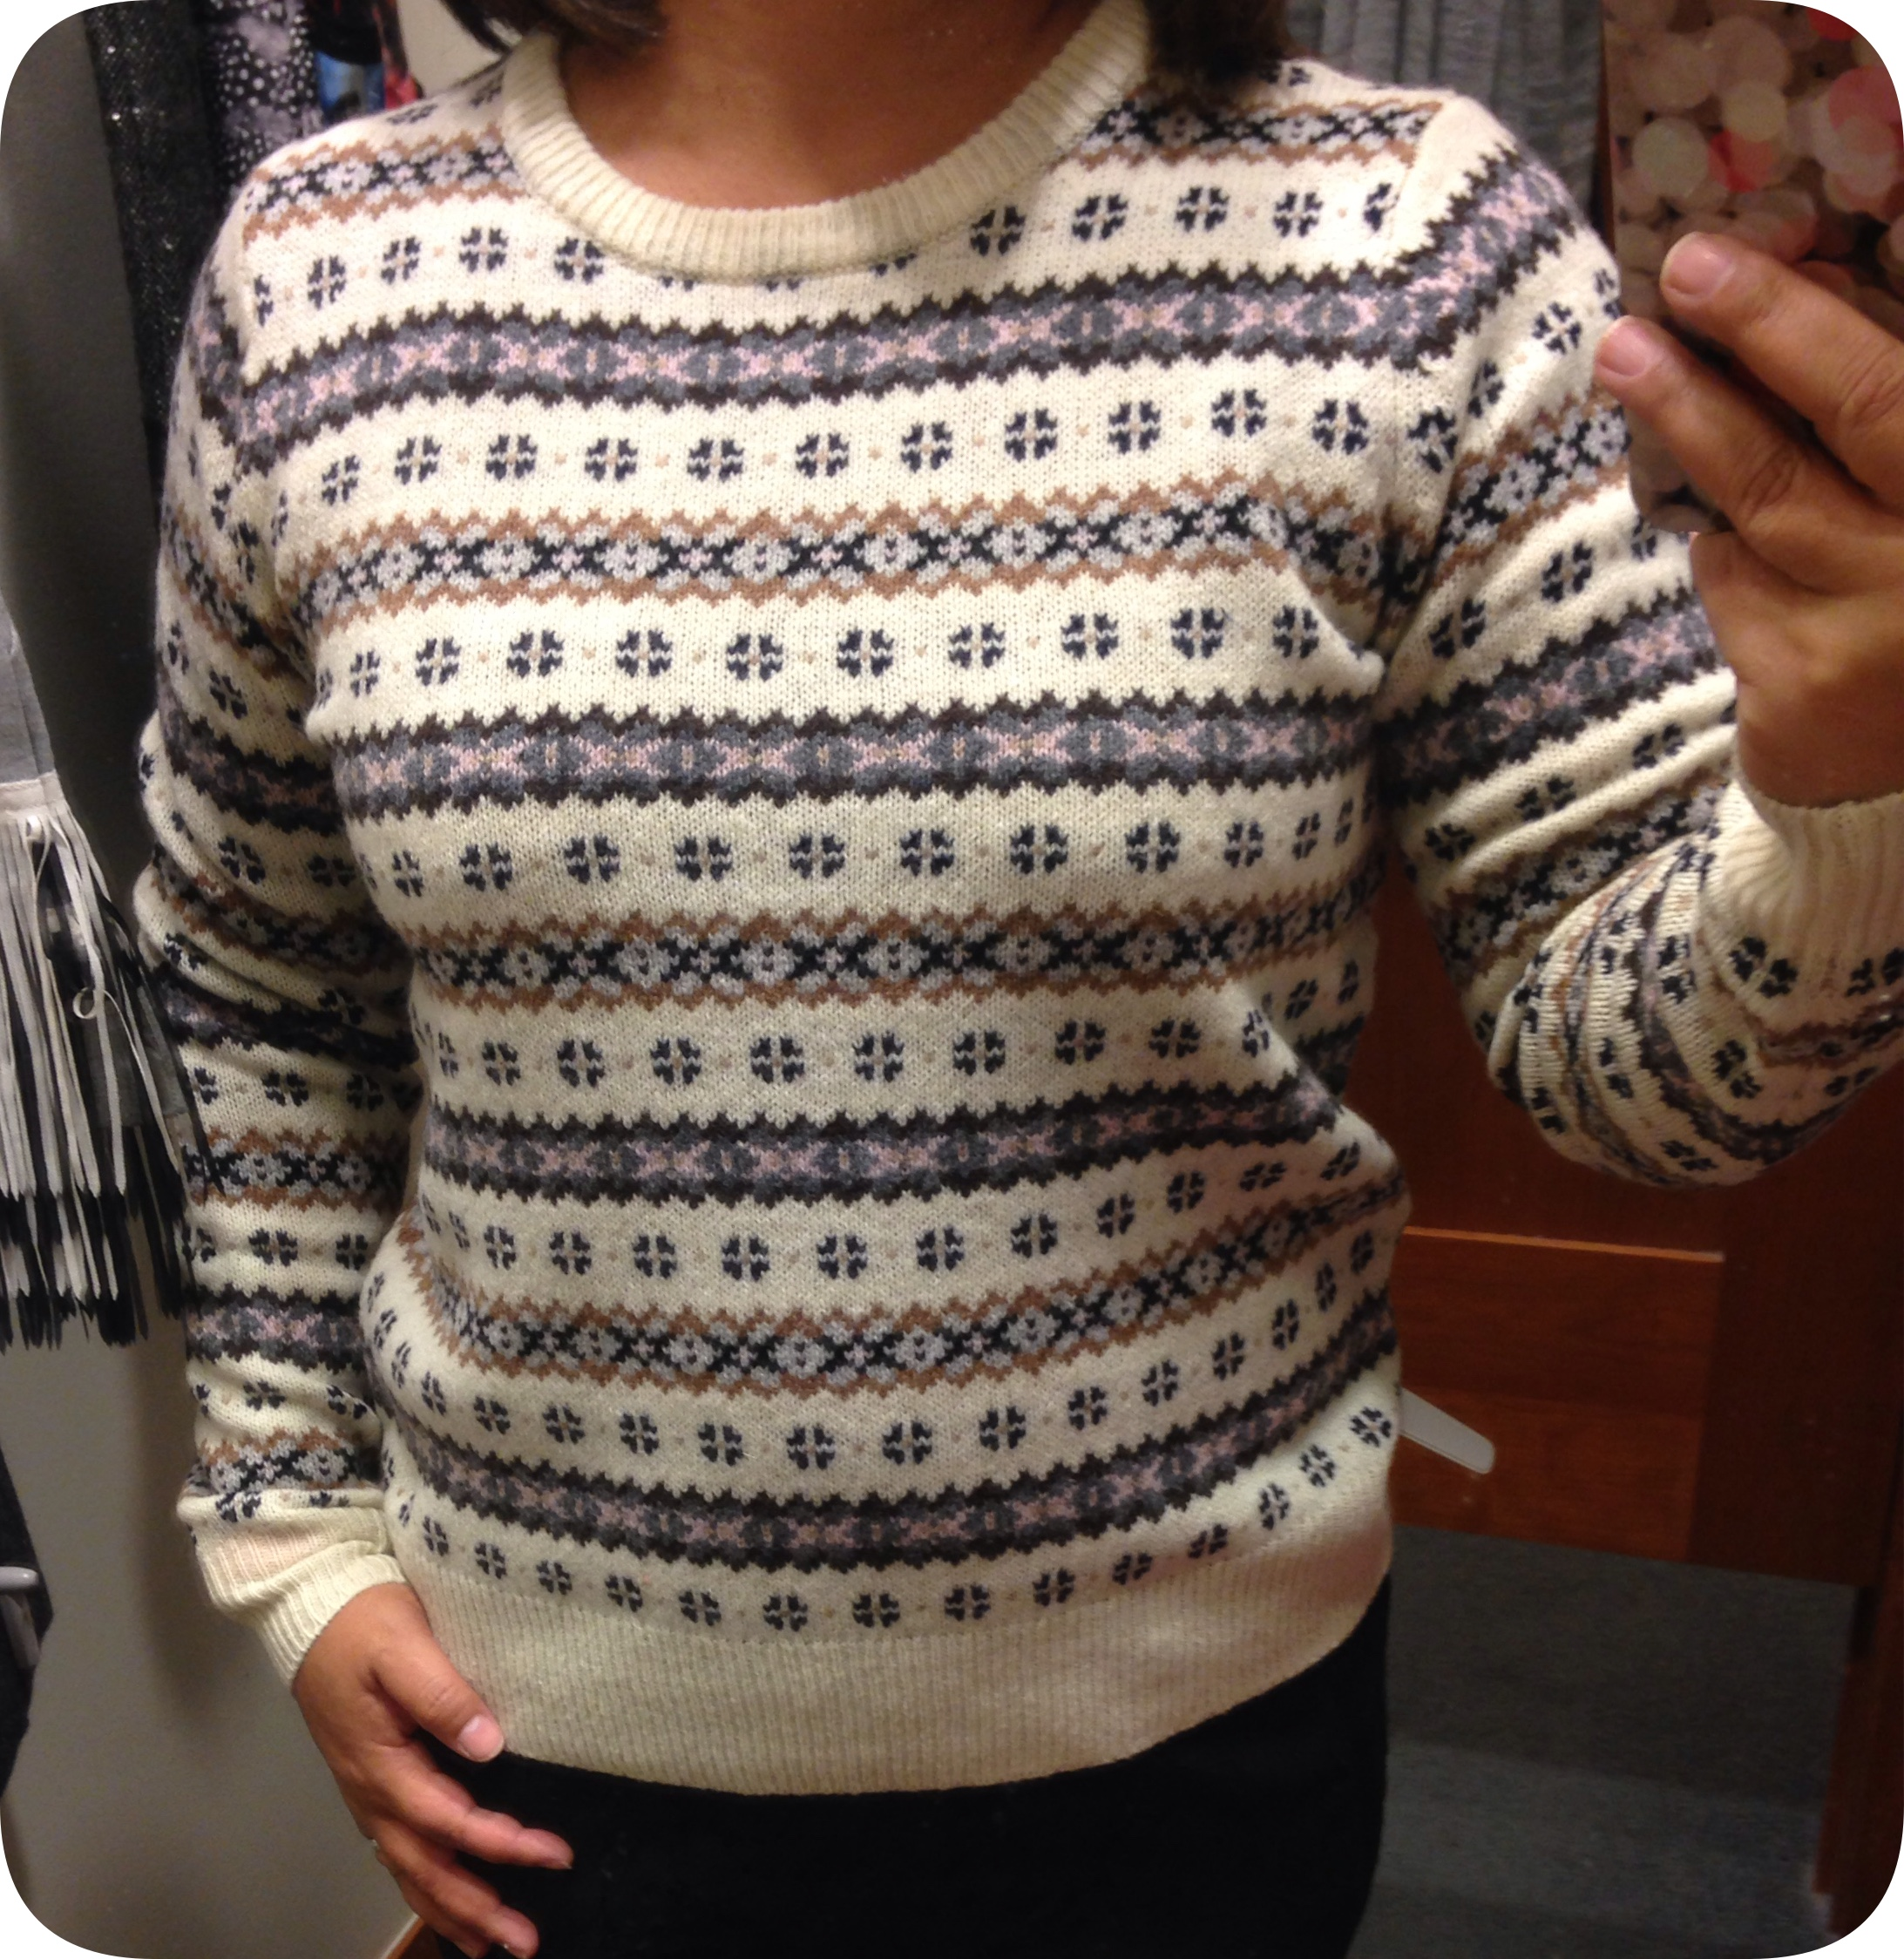 J Crew: Fair Isle Crewneck Sweater, Pull-on Pant in Lace Floral ...